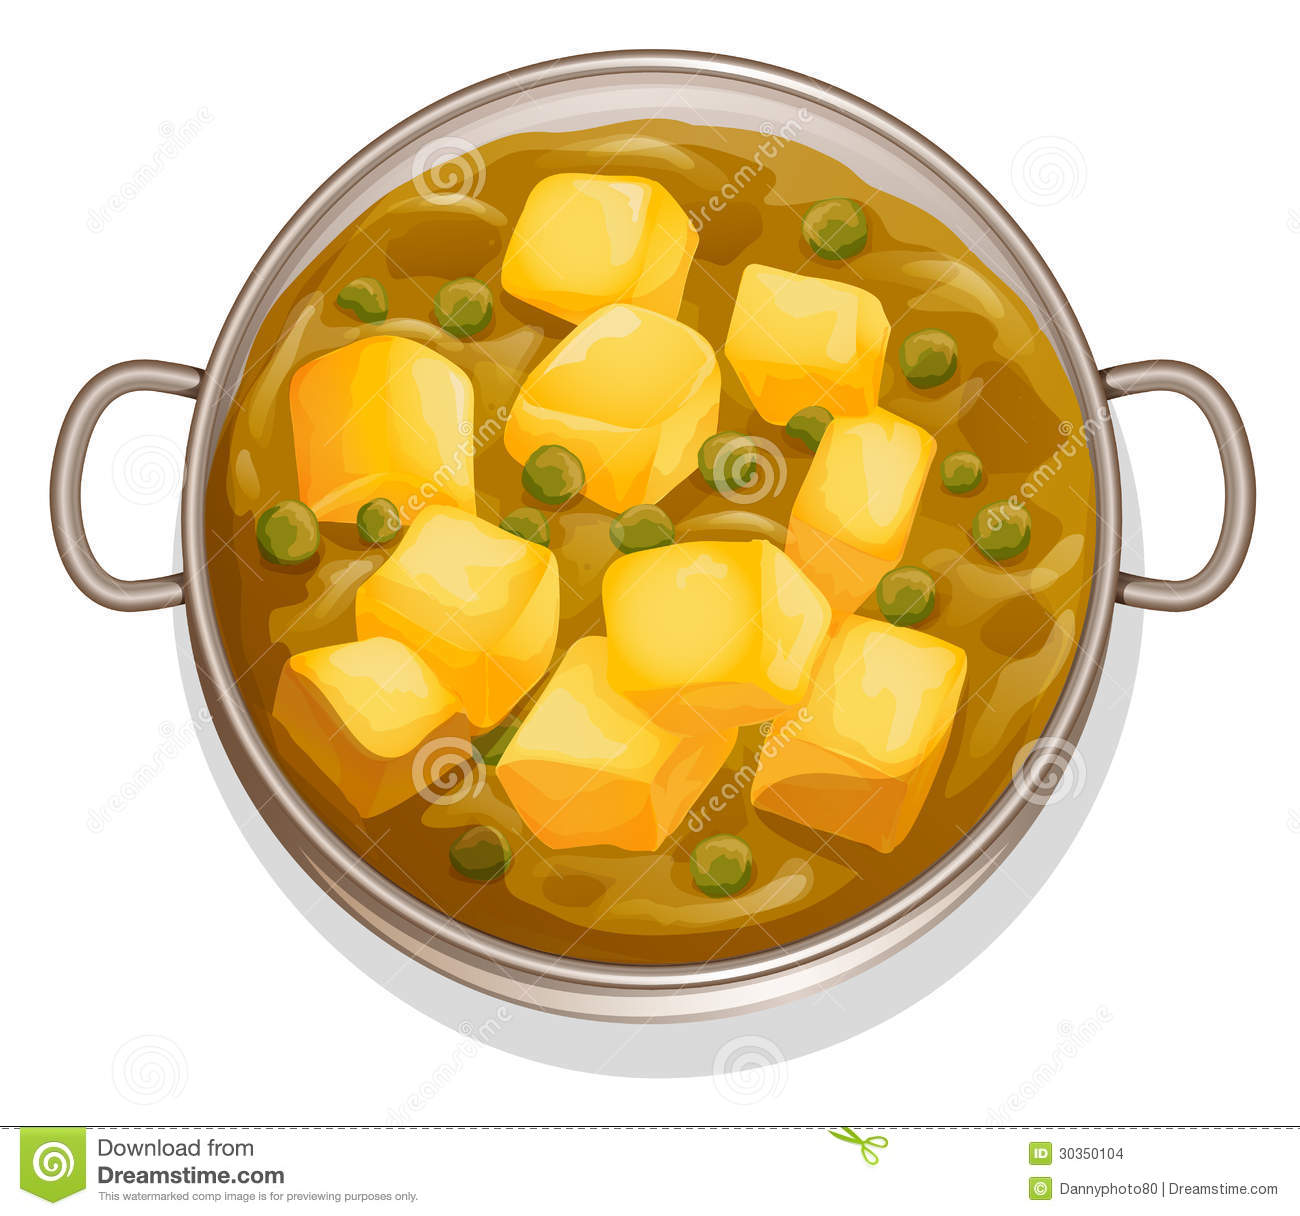 Indian Food Stock Images - Image: 30350104